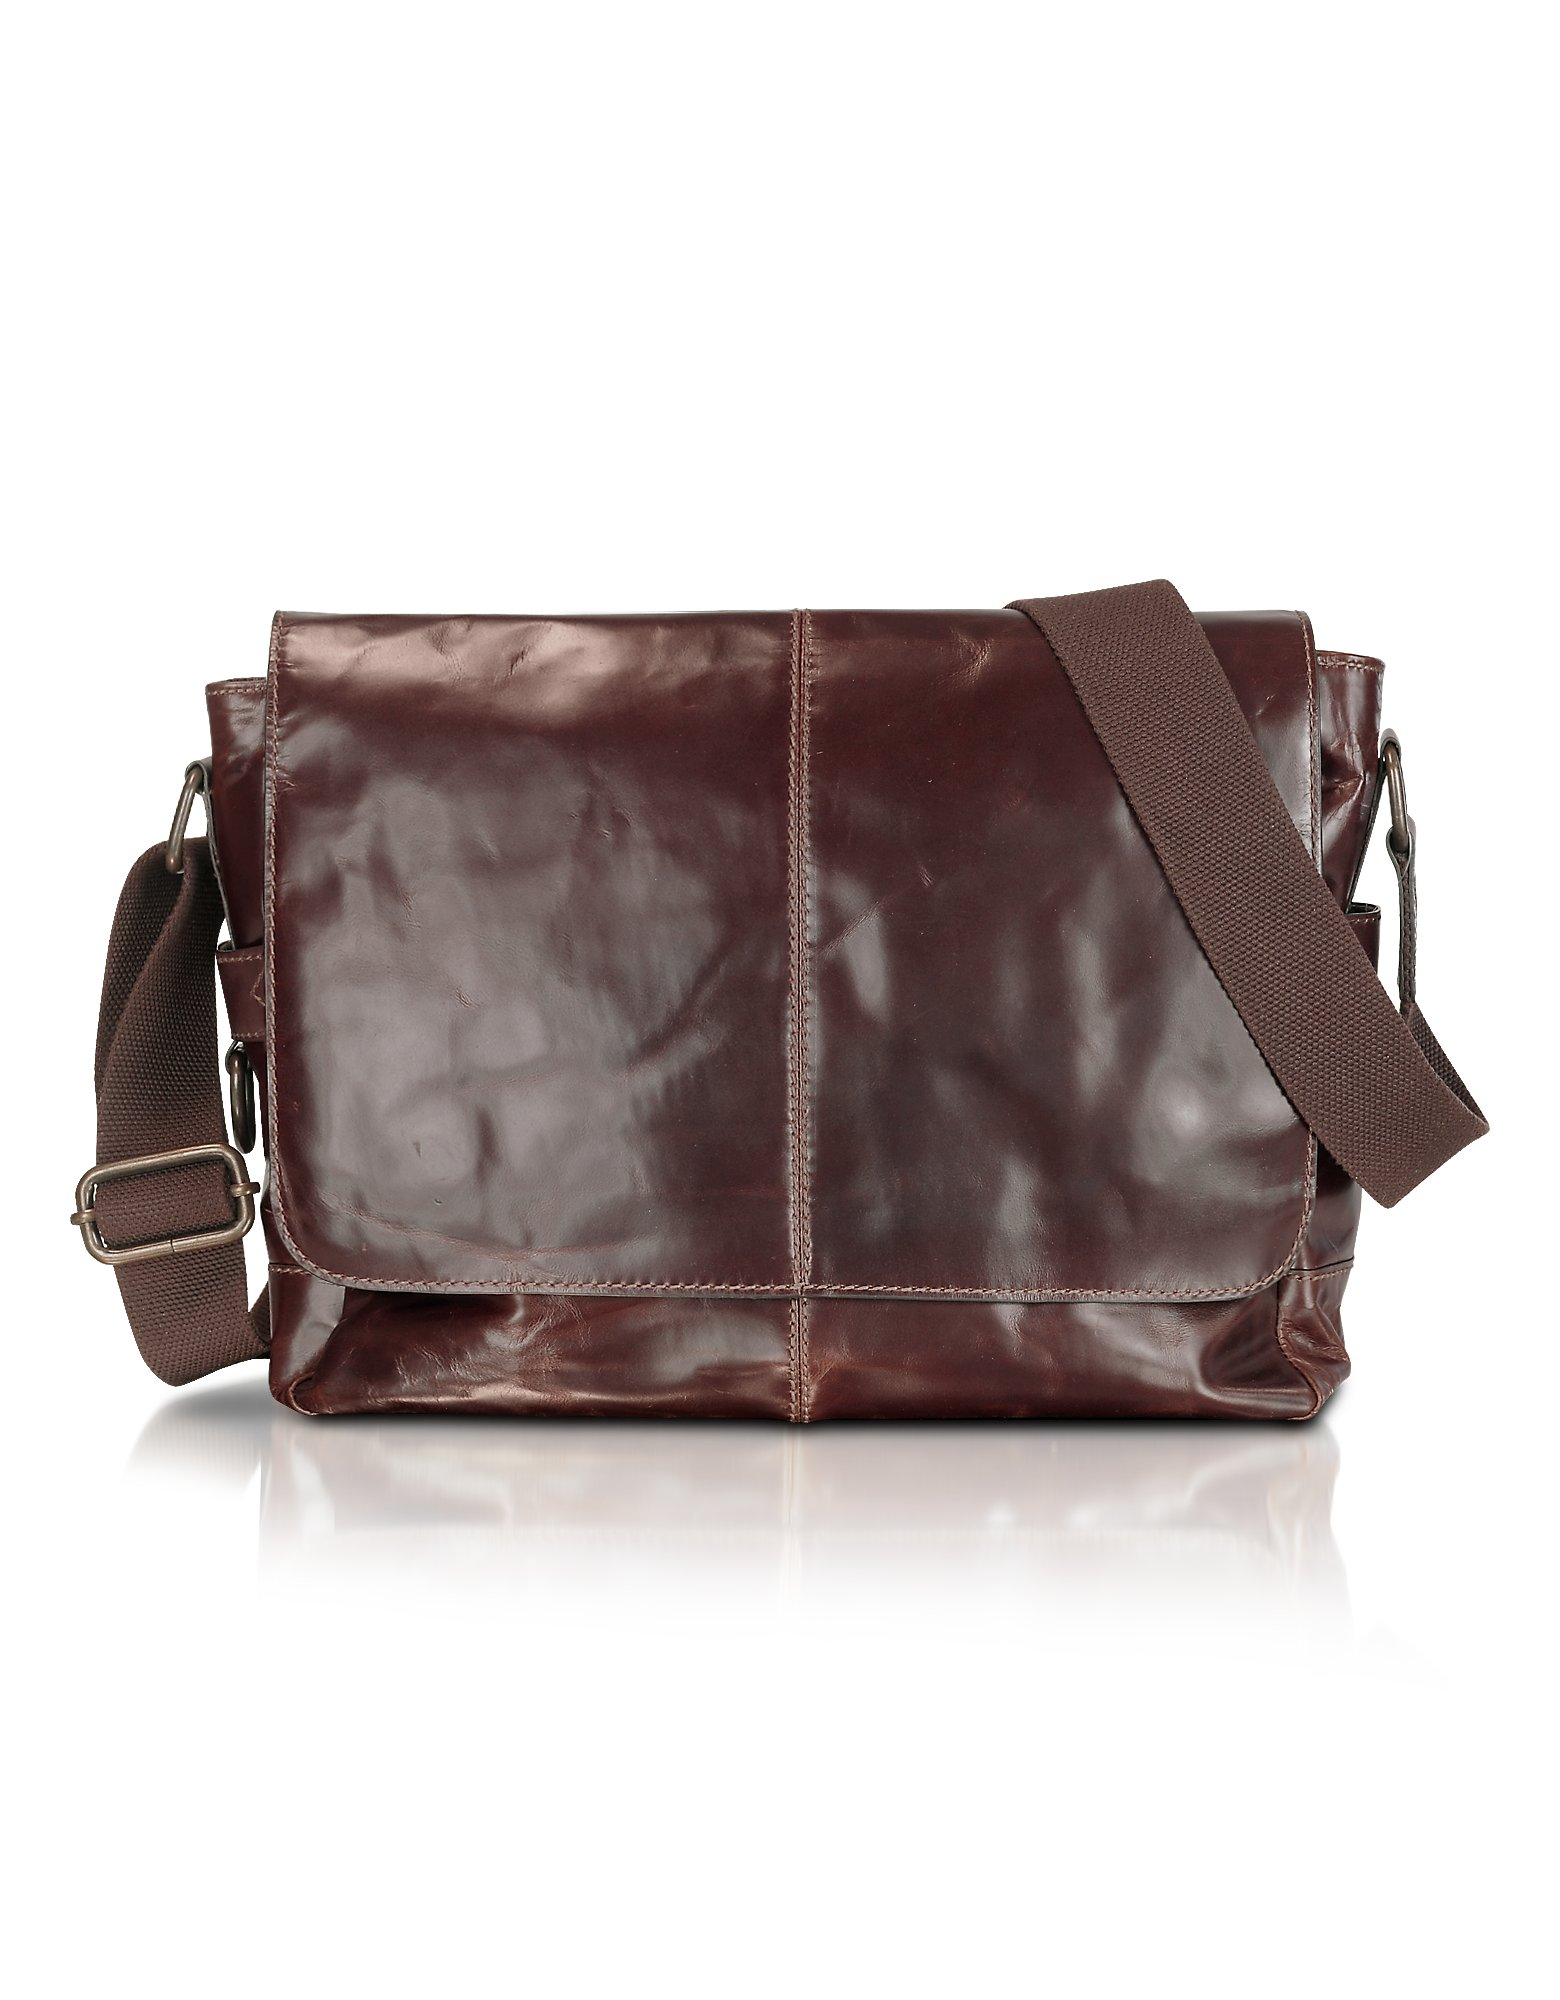 Fashion week Leather Fossil messenger bags for lady